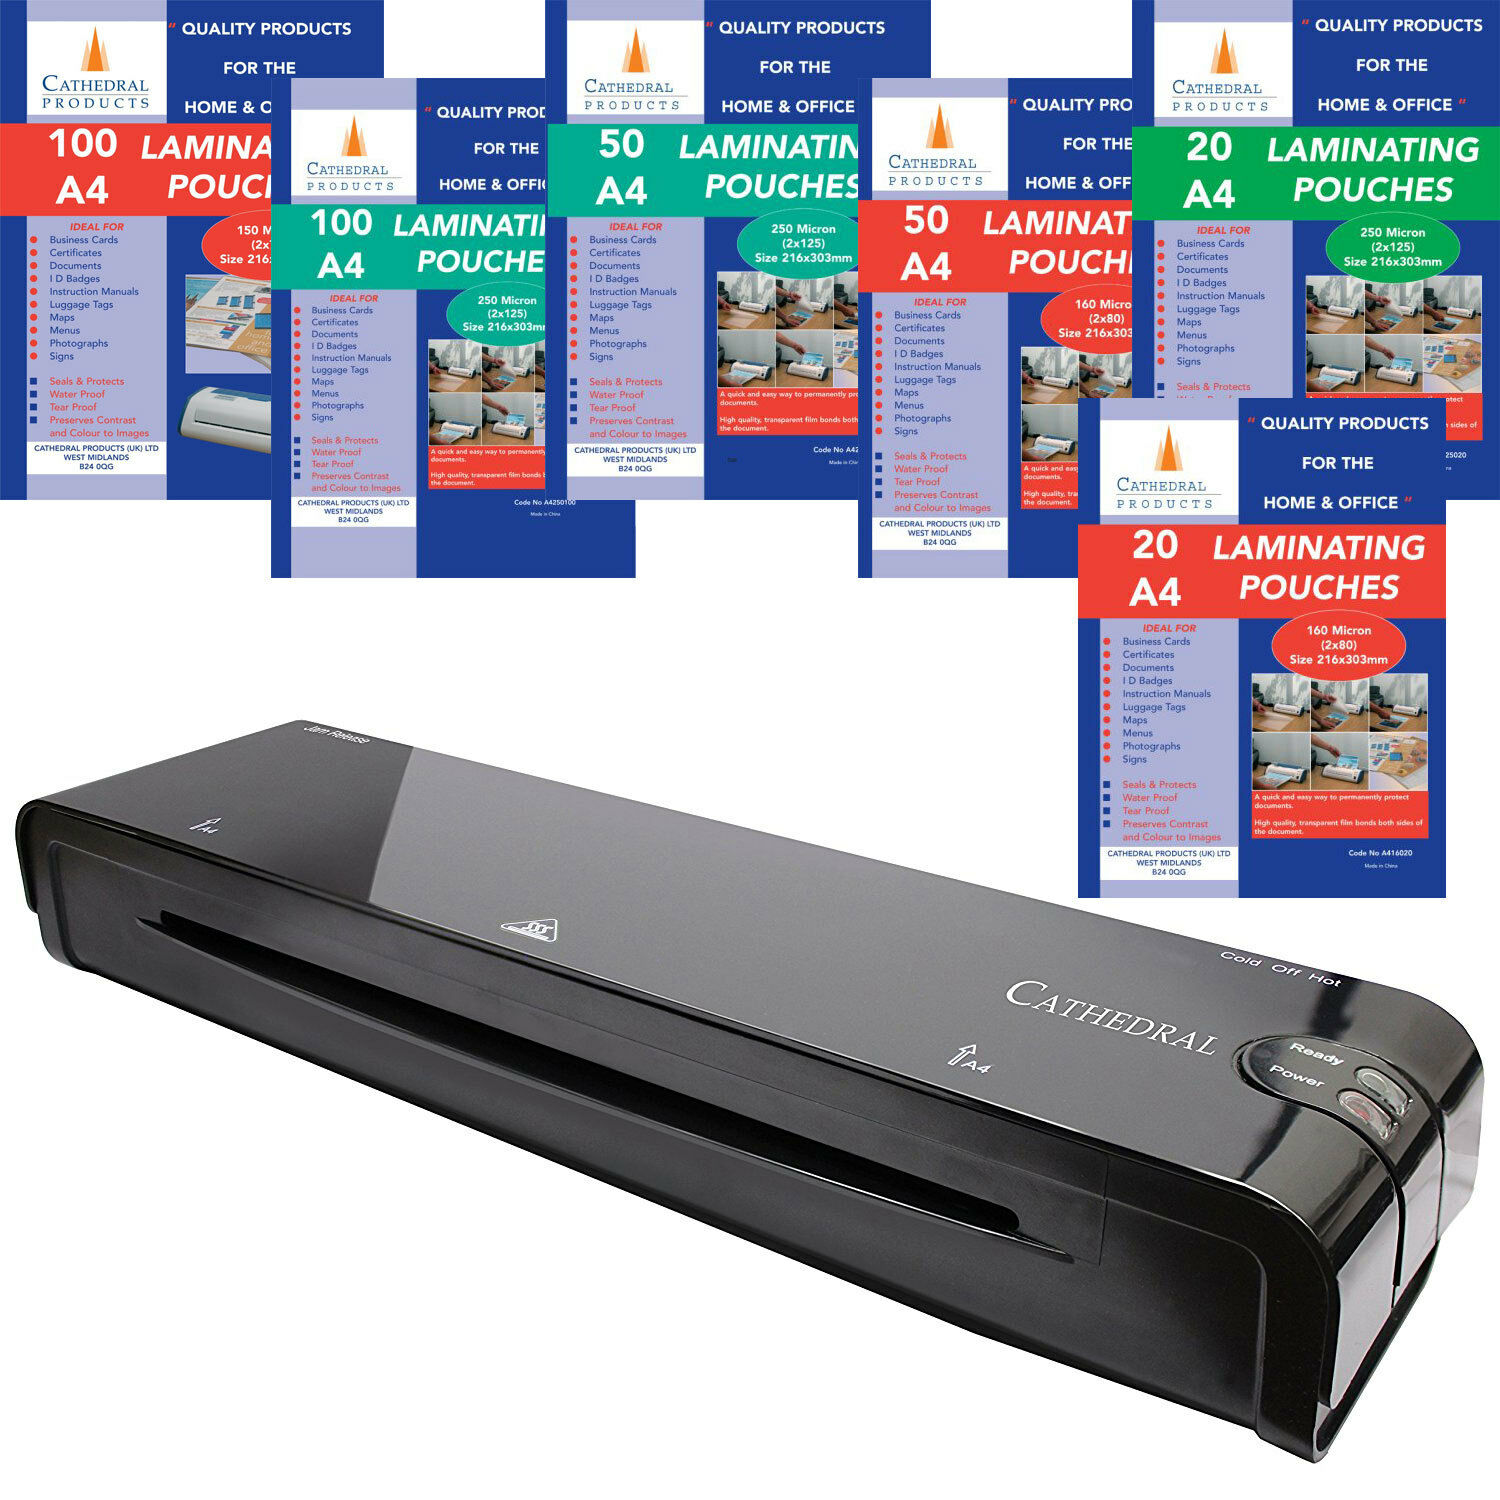 Cathedral Home & Office A3 A4 A5 Laminator / Laminating Machine ...